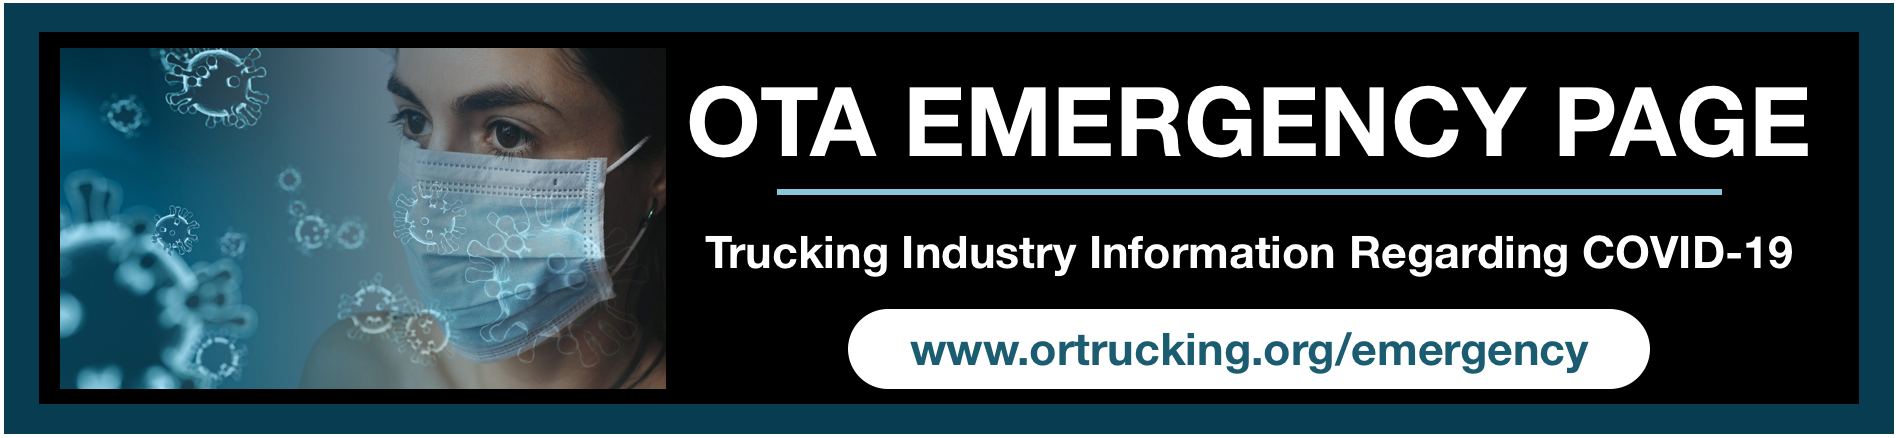 OTA Emergency Page Trucking Industry Information Regarding COVID-19